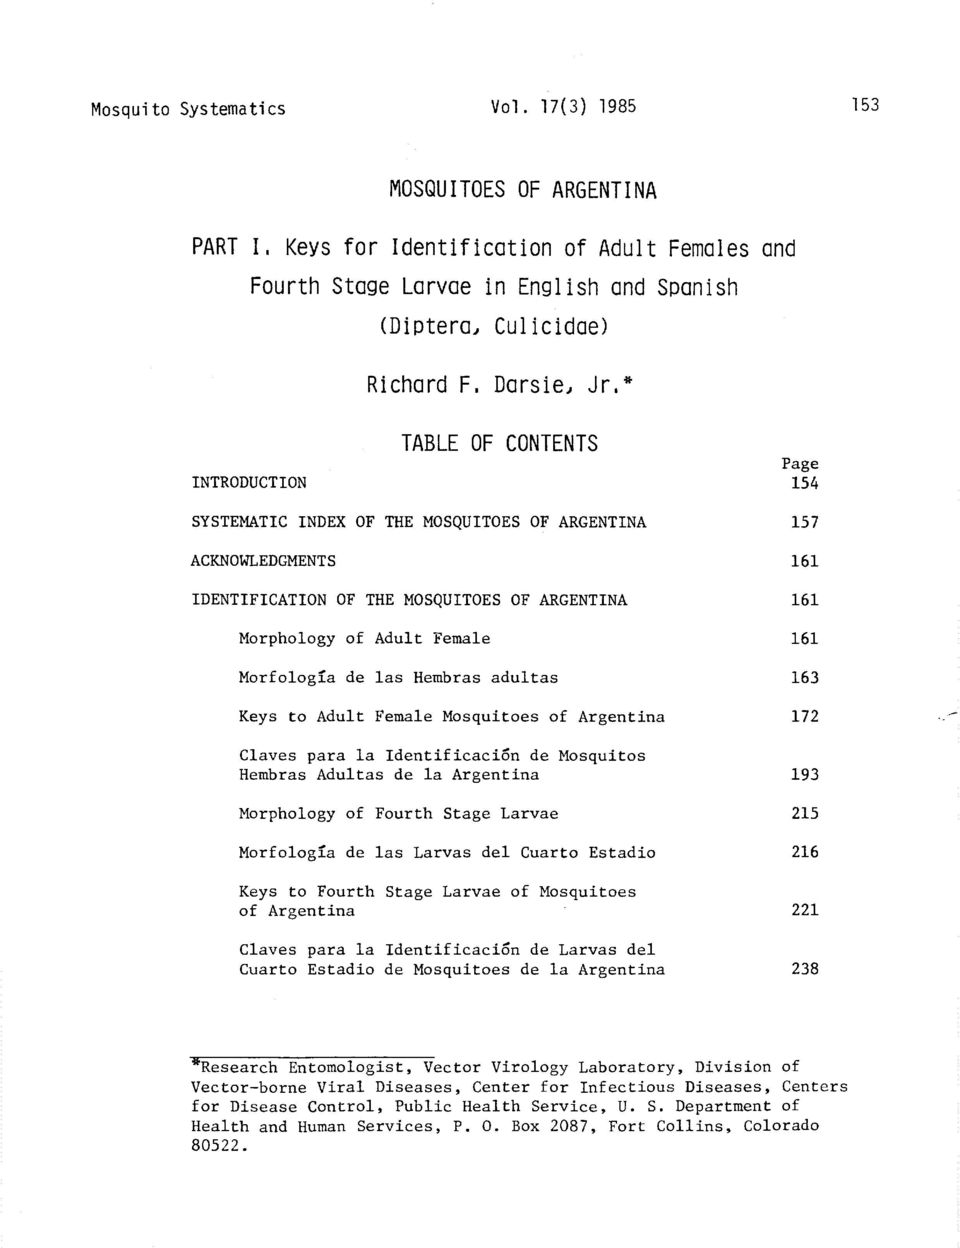 OF CONTENTS Page 154 SYSTEMATIC INDEX OF THE MOSQUITOES OF ARGENTINA ACKNOWLEDGMENTS 157 161 IDENTIFICATION OF THE MOSQUITOES OF ARGENTINA 161 Morphology of Adult Female Morfolog?